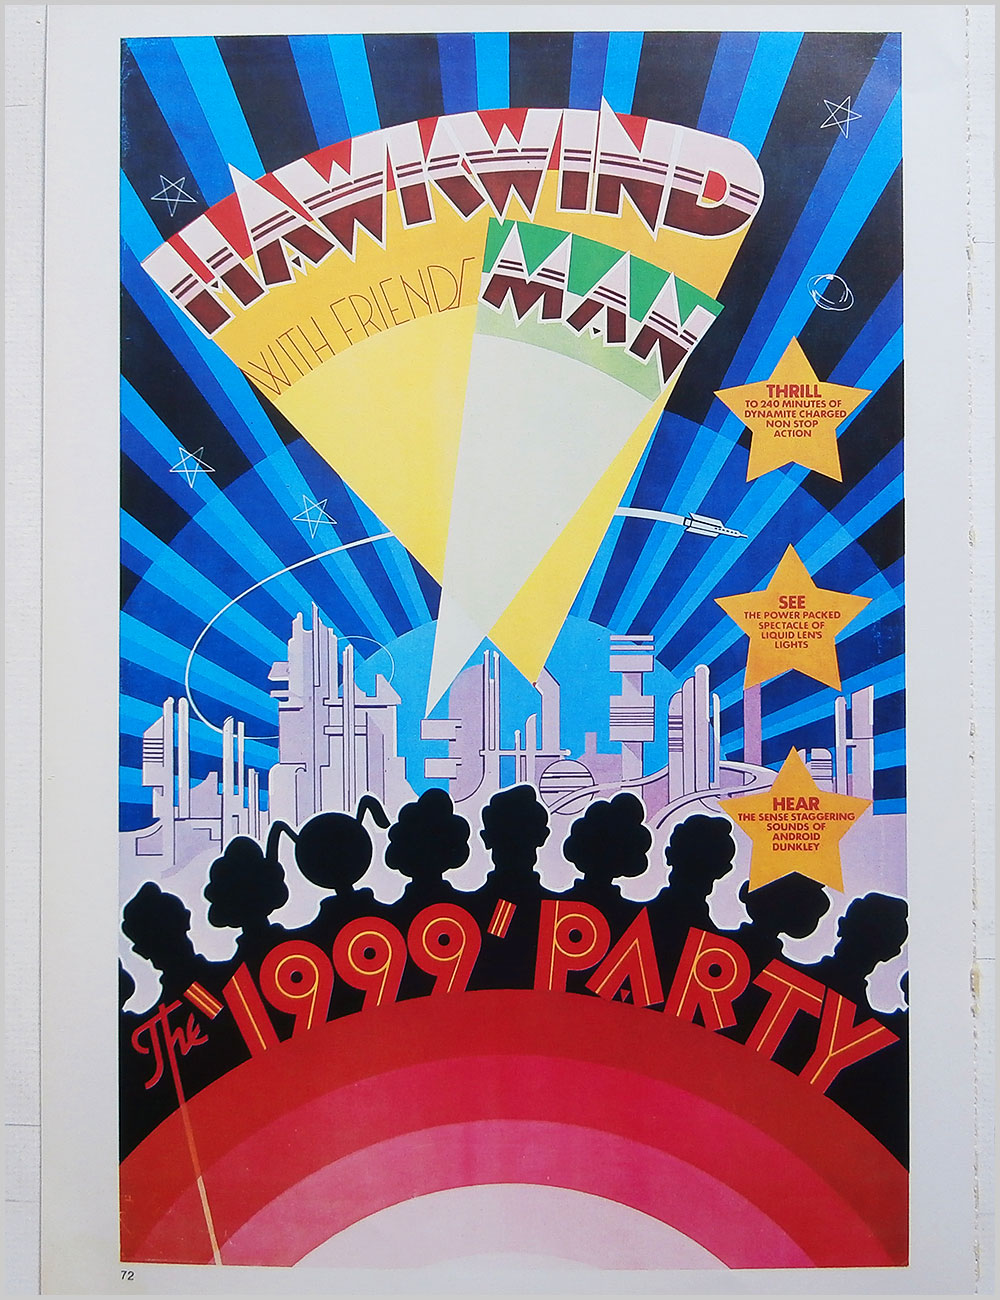 Hawkwind and Be-Bop Deluxe - Rock Poster: Hawkwind: The 1999 Party b/w Be-Bop Deluxe: Axe Victim (PB100306)